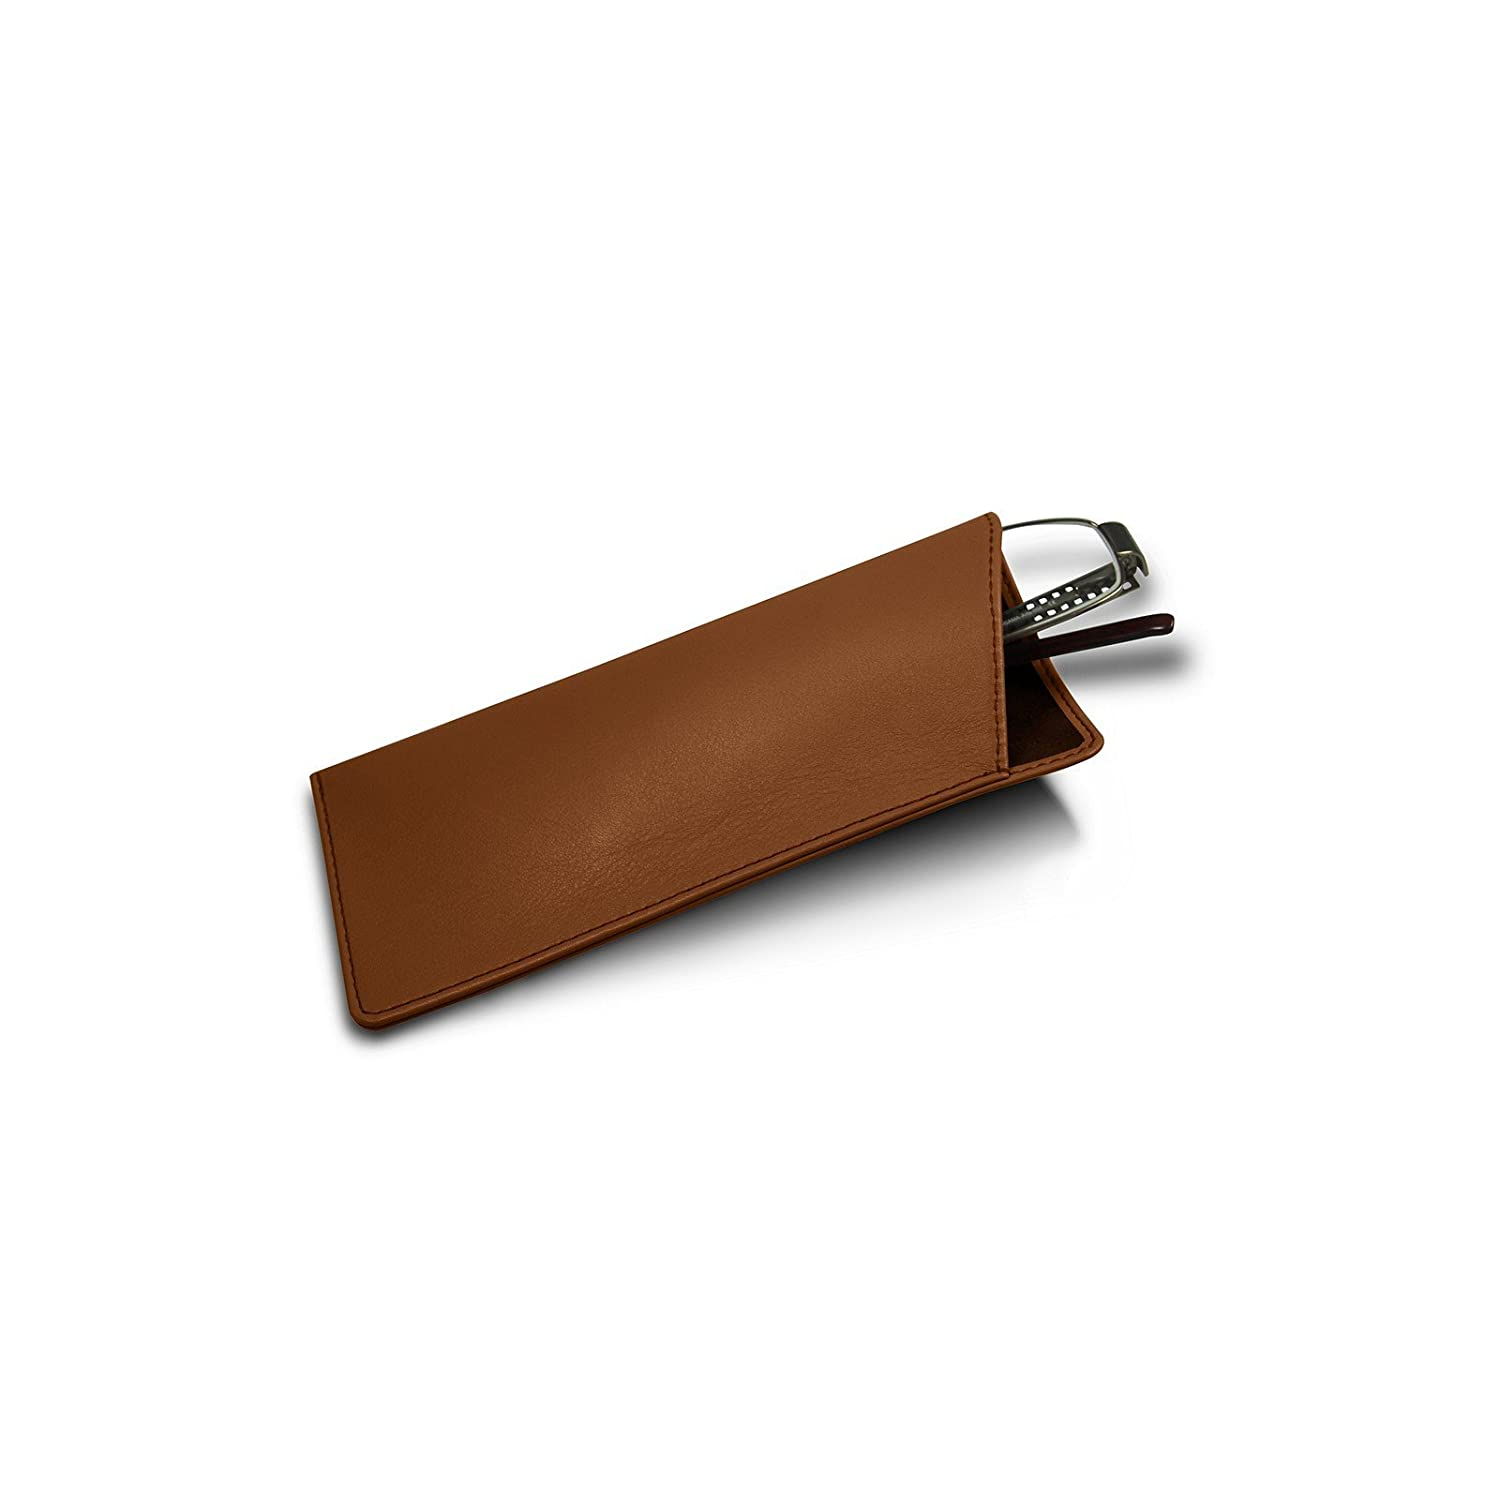 Lucrin - Thin glasses case - Black - Smooth Leather Lucrin Leathergoods